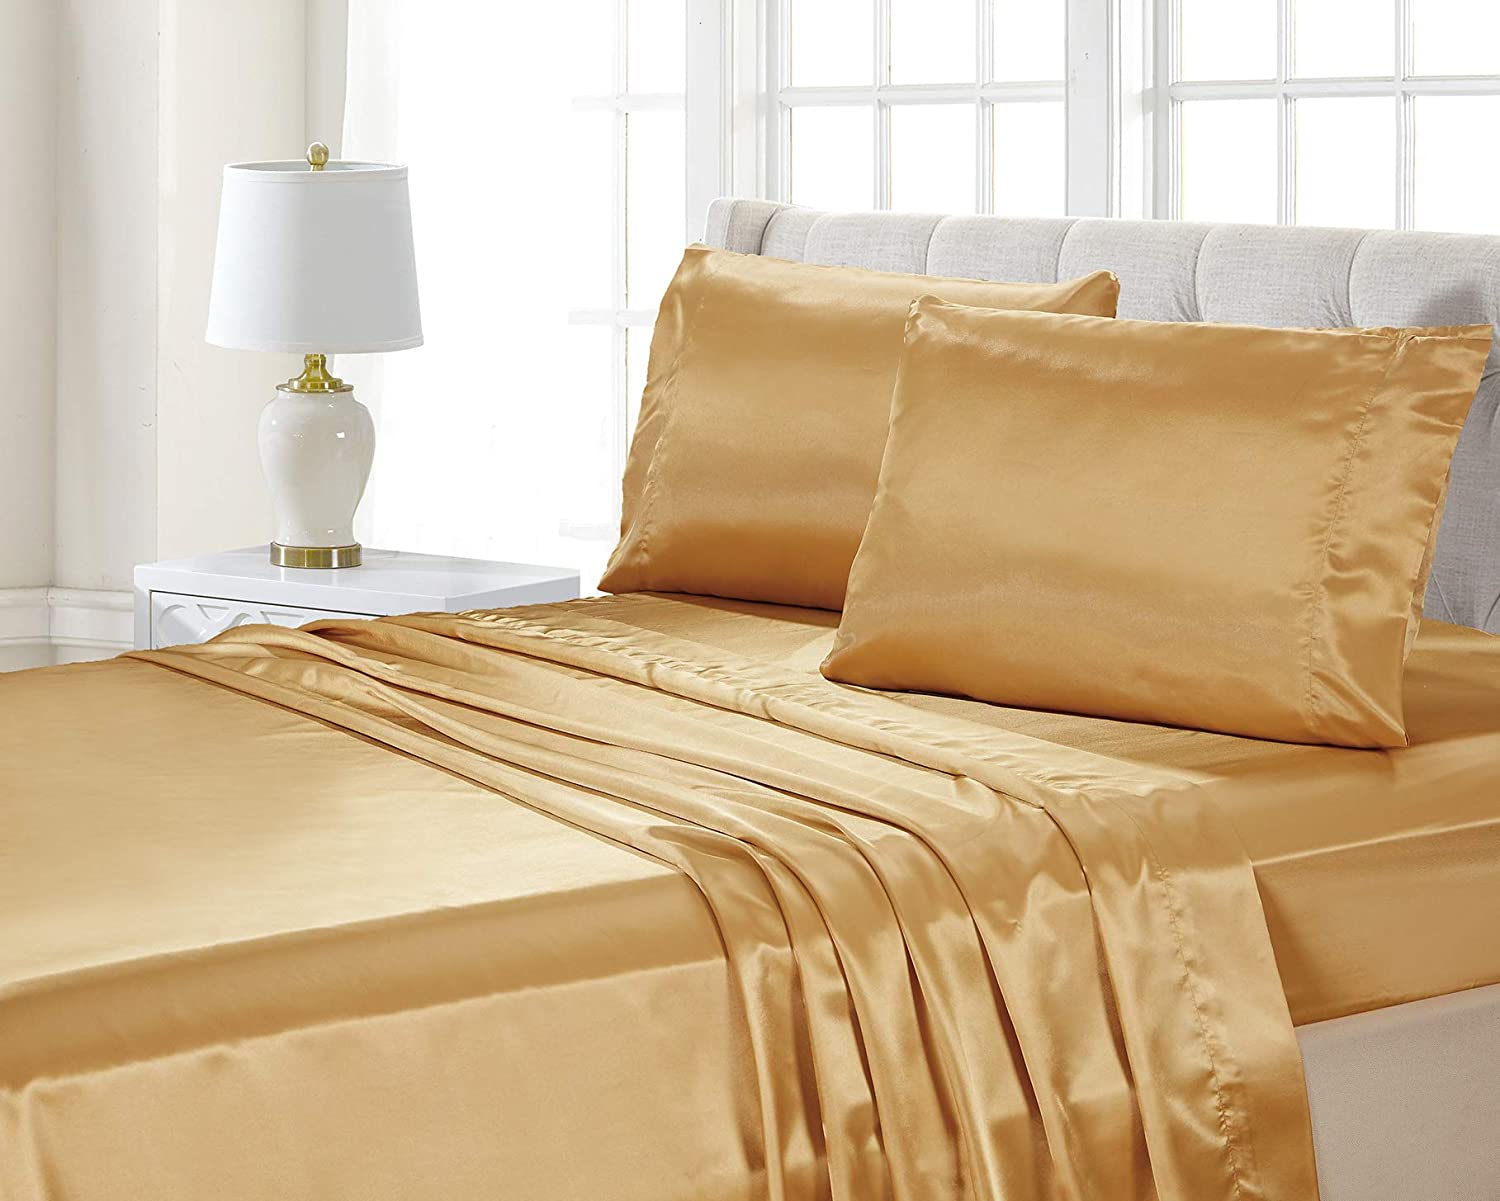 4-Piece QUEEN size Deep Pockets SOLID GOLD Soft Silky Charmeuse Satin Sheet Set Fitted and Pillow Cases Flat